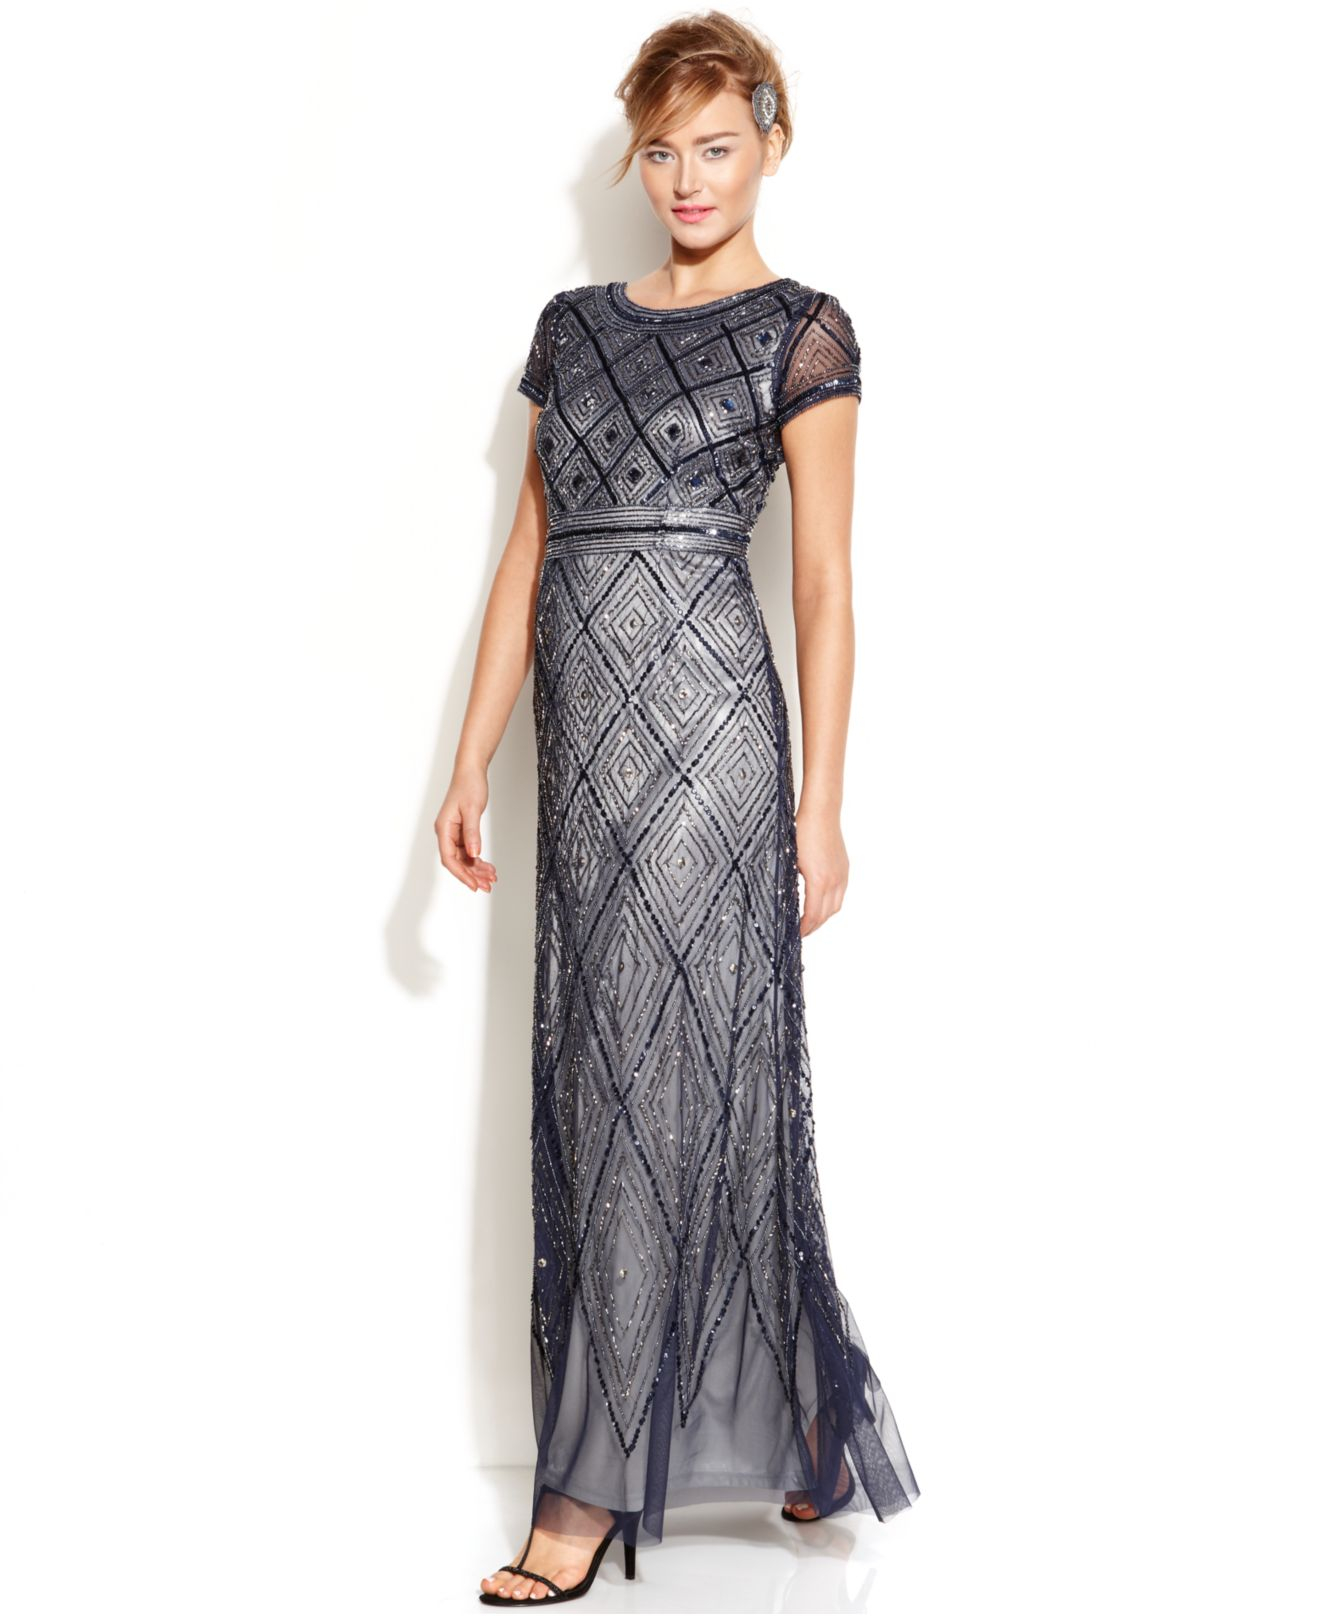 Lyst - Adrianna Papell Cap-Sleeve Beaded Illusion Gown in Blue